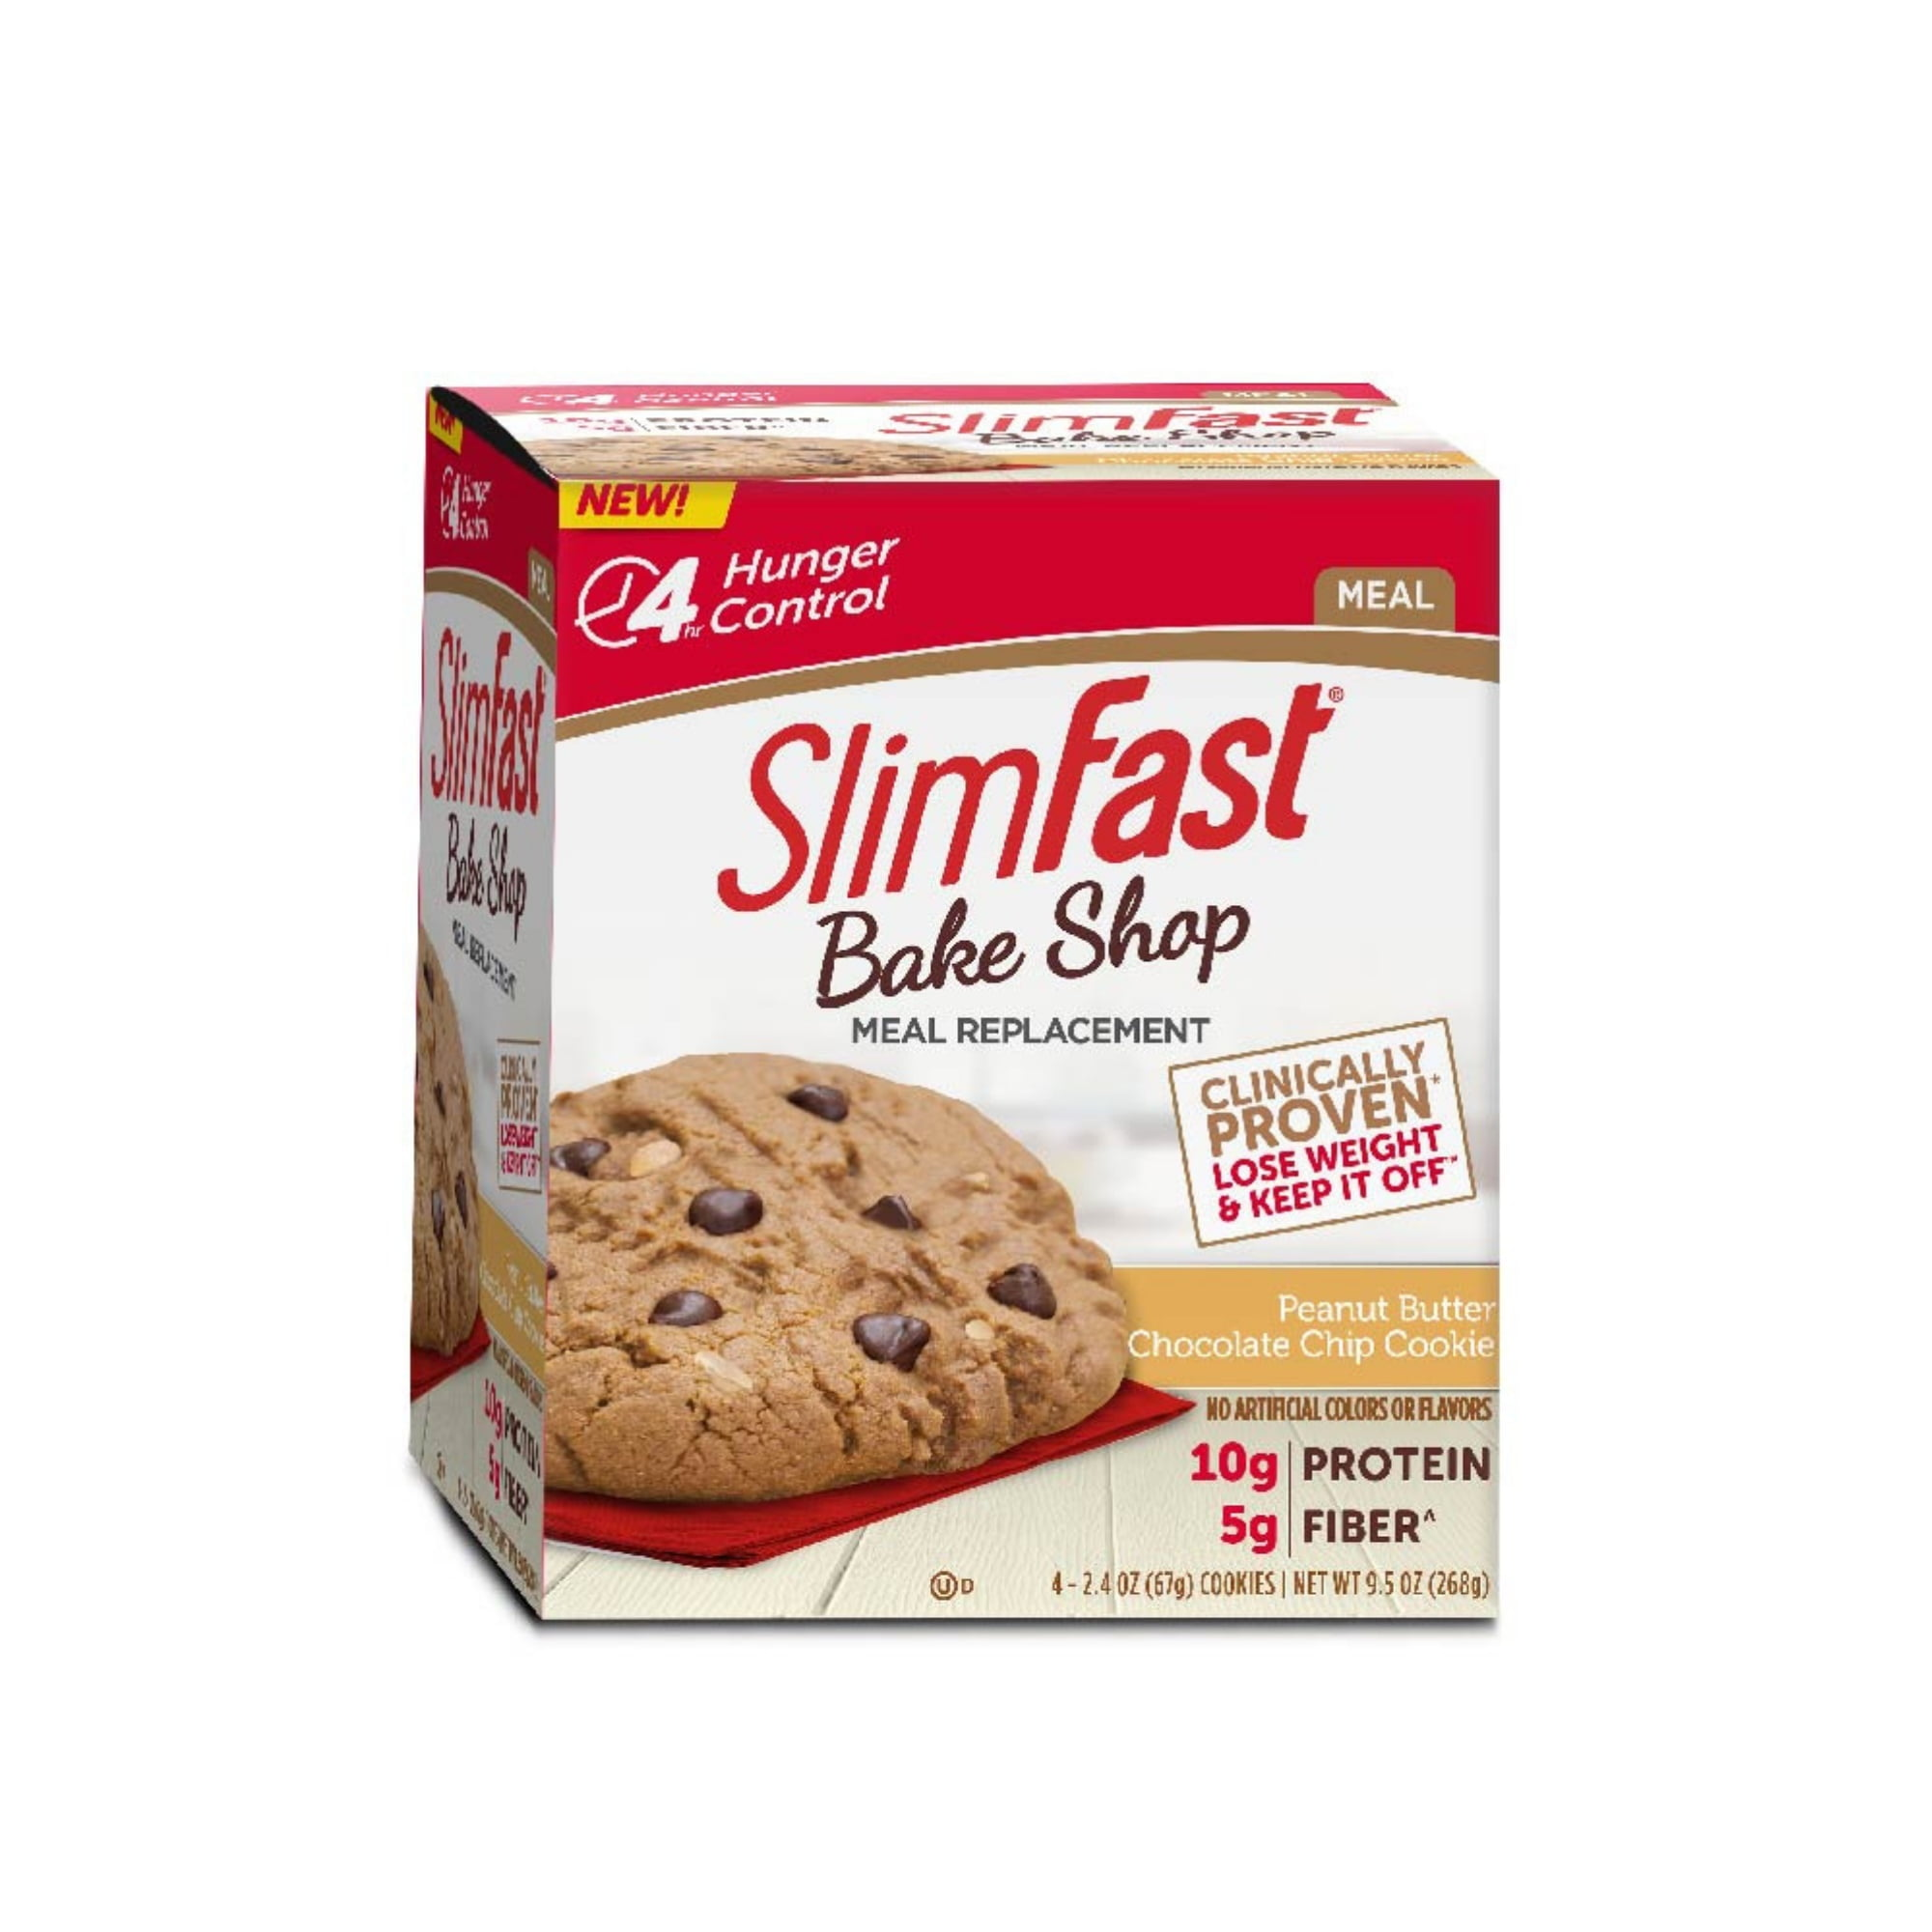 Slimfast Bake Shop Meal Replacement Peanut Butter Chocolate Chip Cookie 2 4 Oz 4 Count Walmart Inventory Checker Brickseek